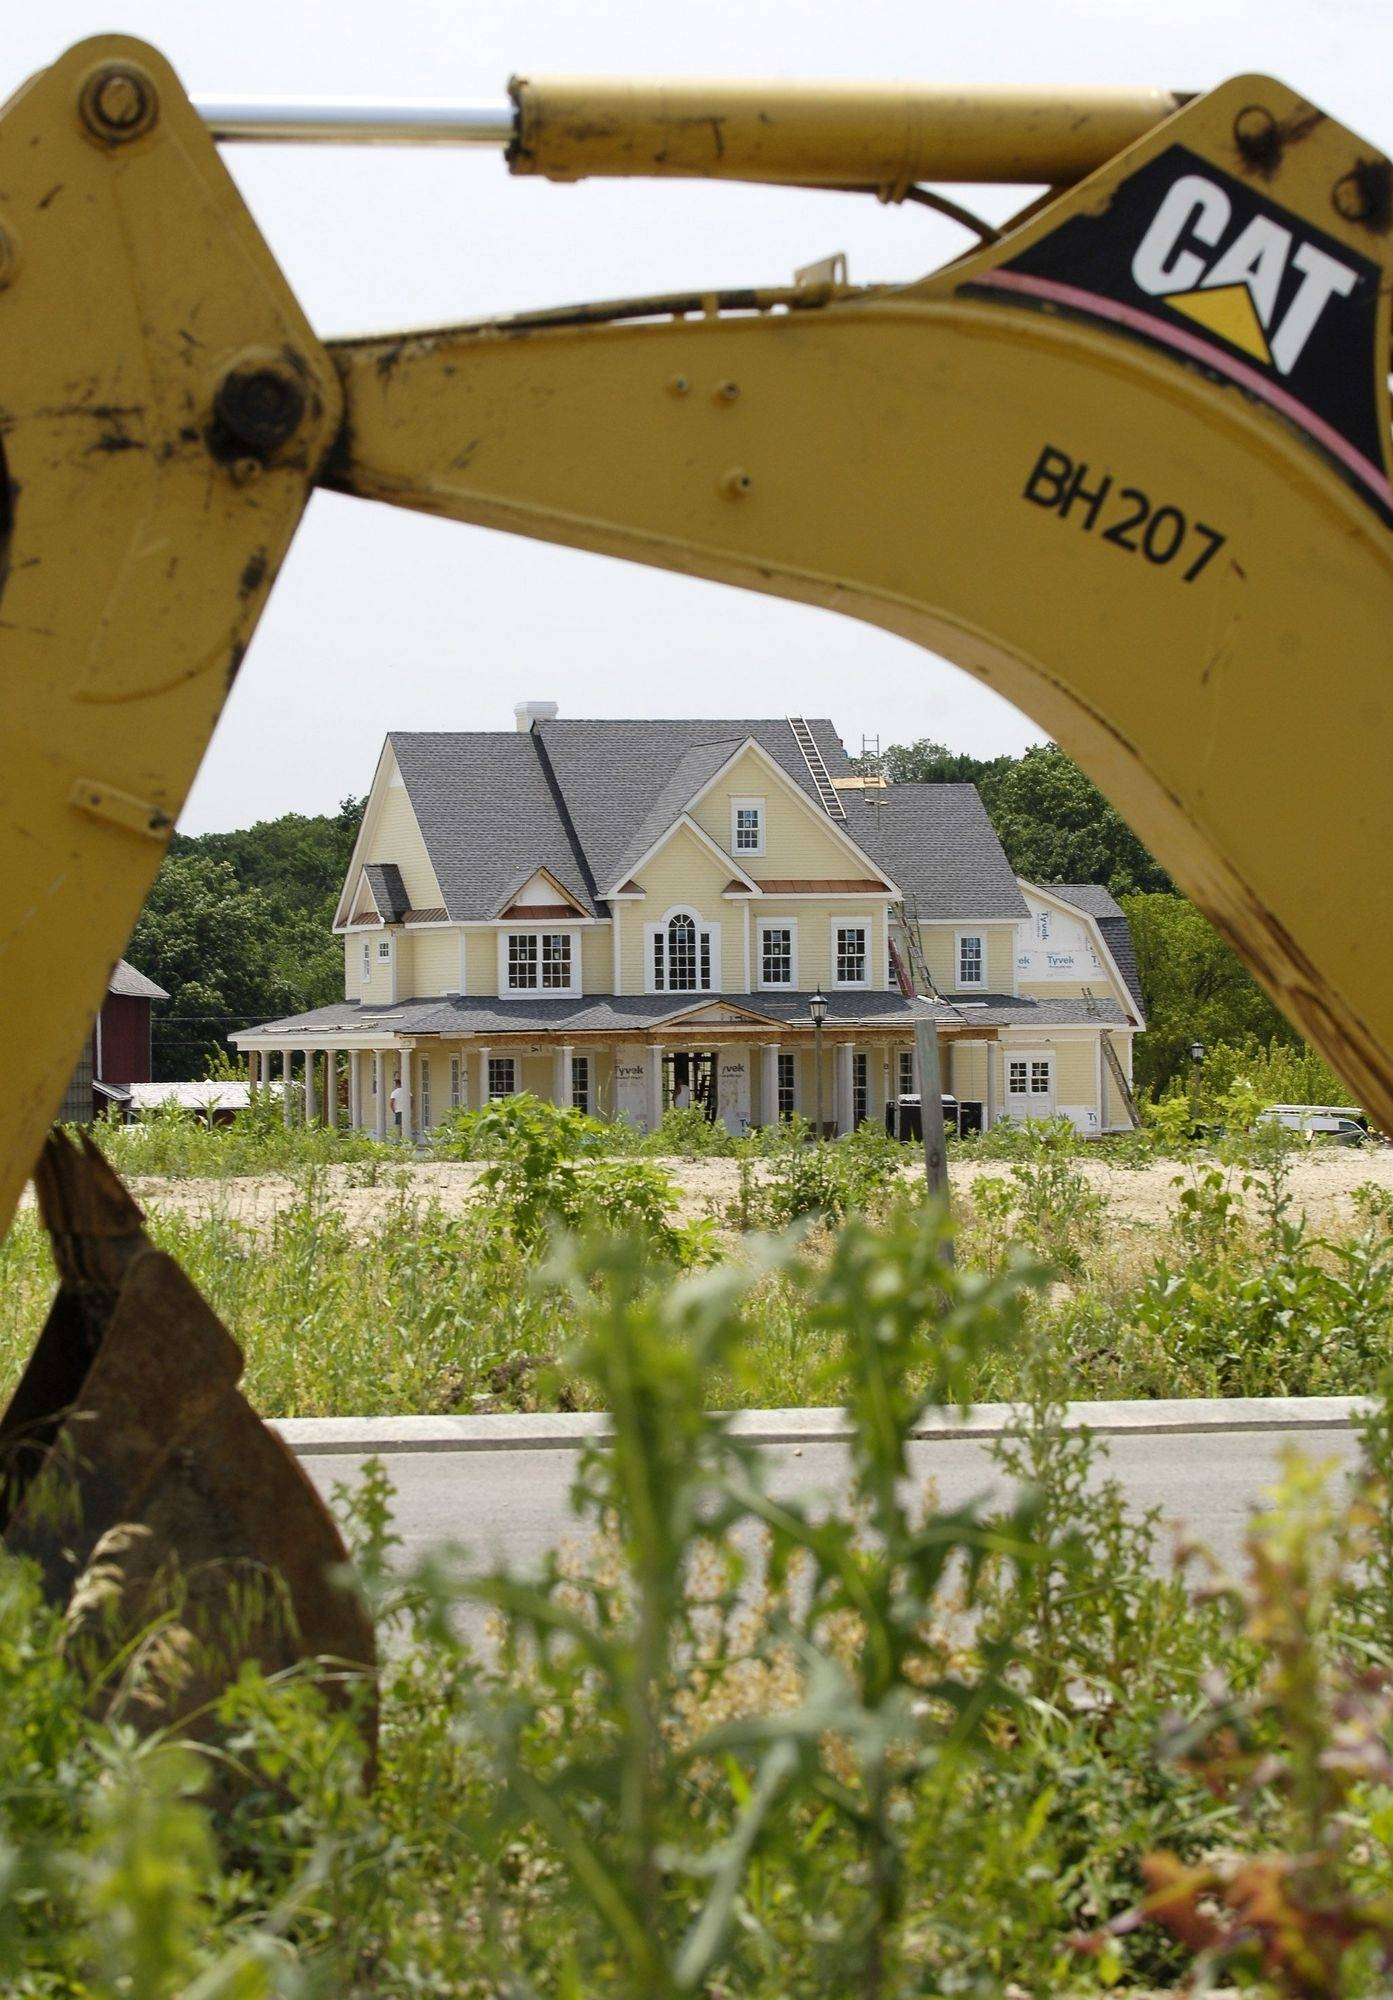 Sugar Grove to subdivision: No more building until you pay up